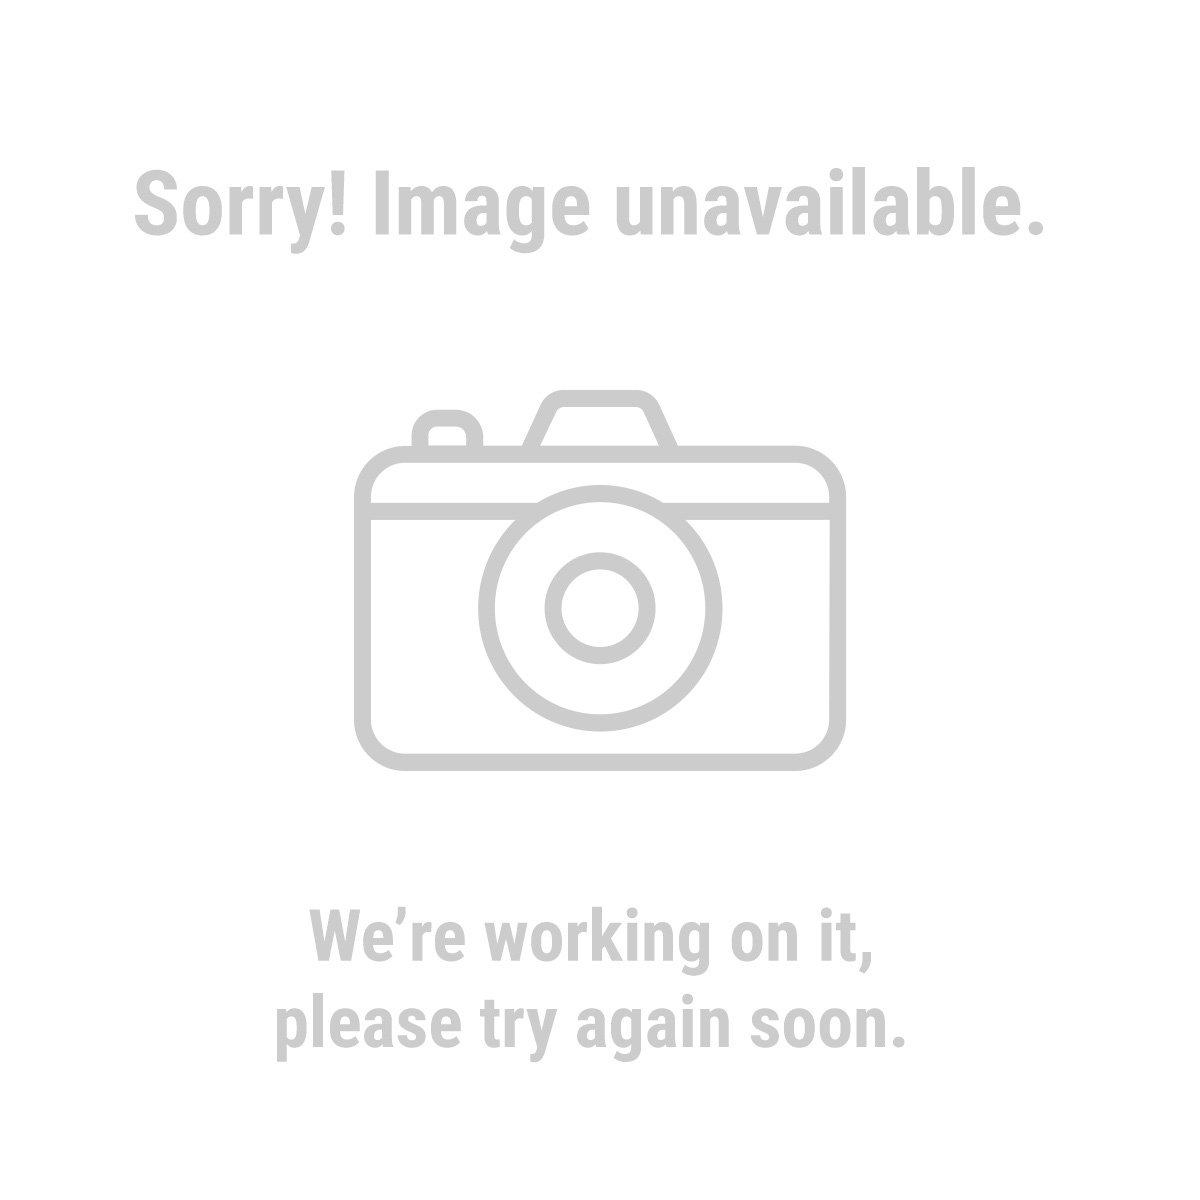 Earthquake XT 62892 3/4 in. Composite Xtreme Torque Air Impact Wrench